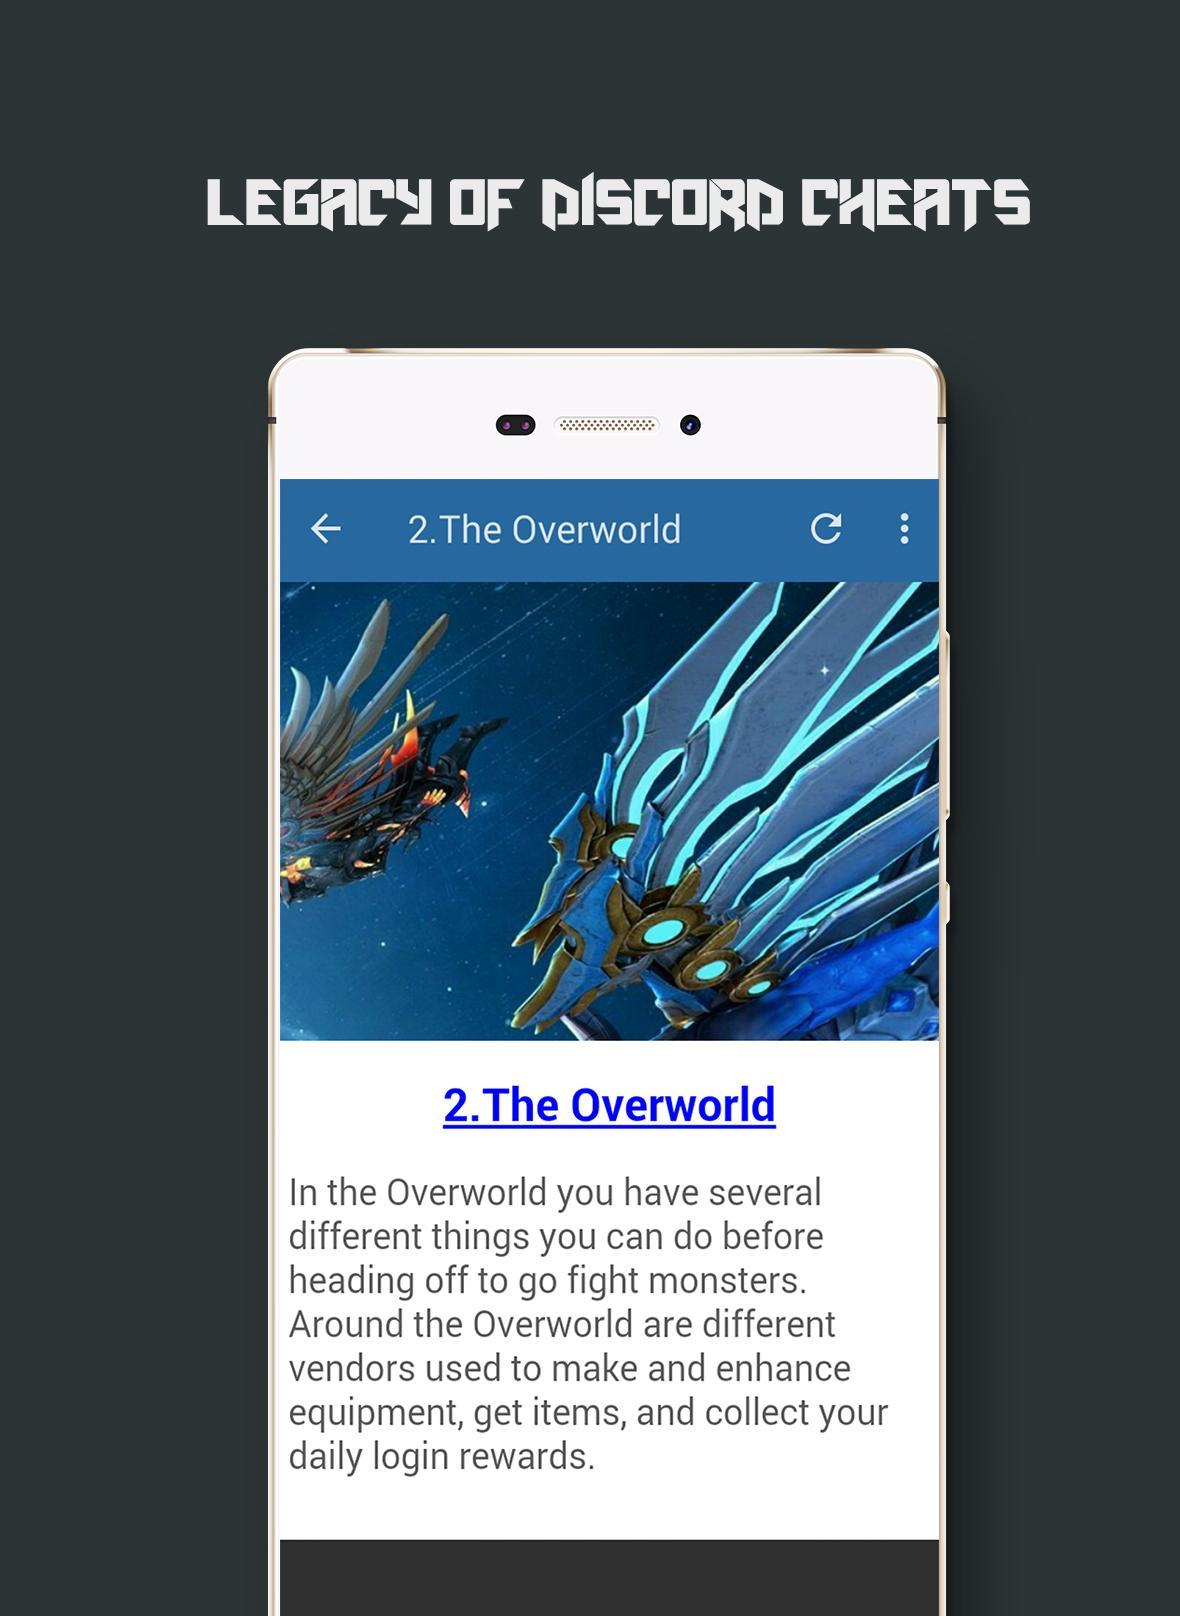 New Guide Legacy Of Discord 2018 for Android - APK Download